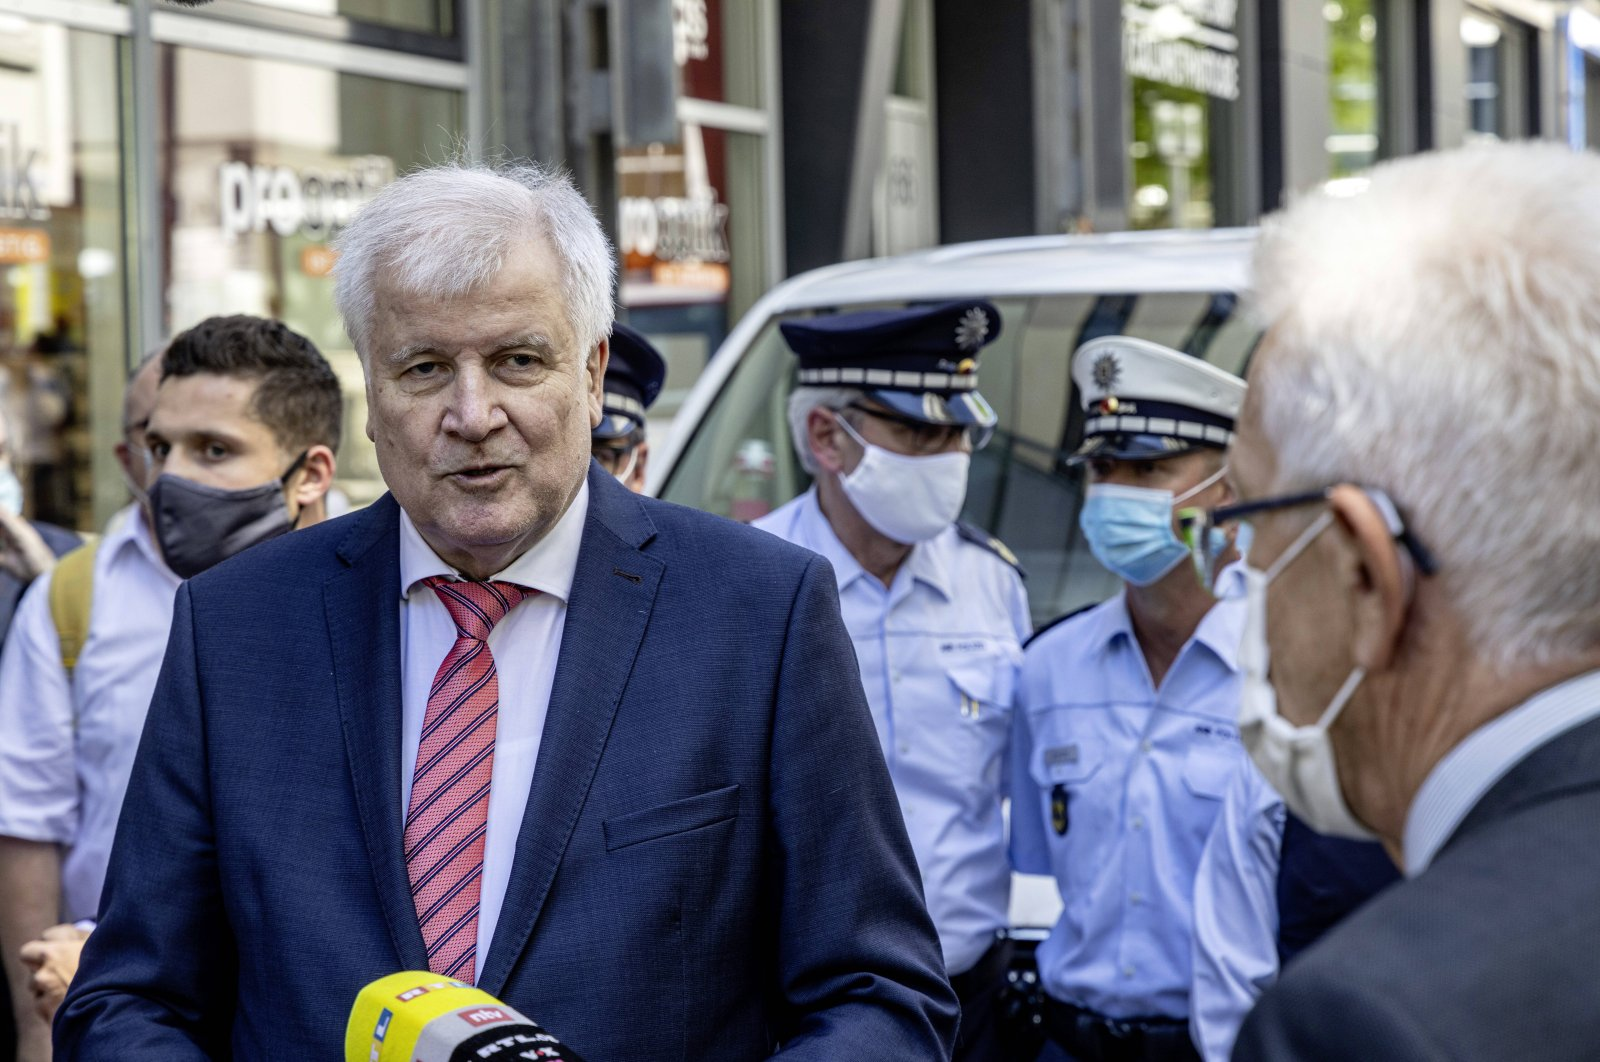 Federal Minister of the Interior Horst Seehofer CSU gets a picture of the situation after the riots, Stuttgart, June 22, 2020. (REUTERS Photo)